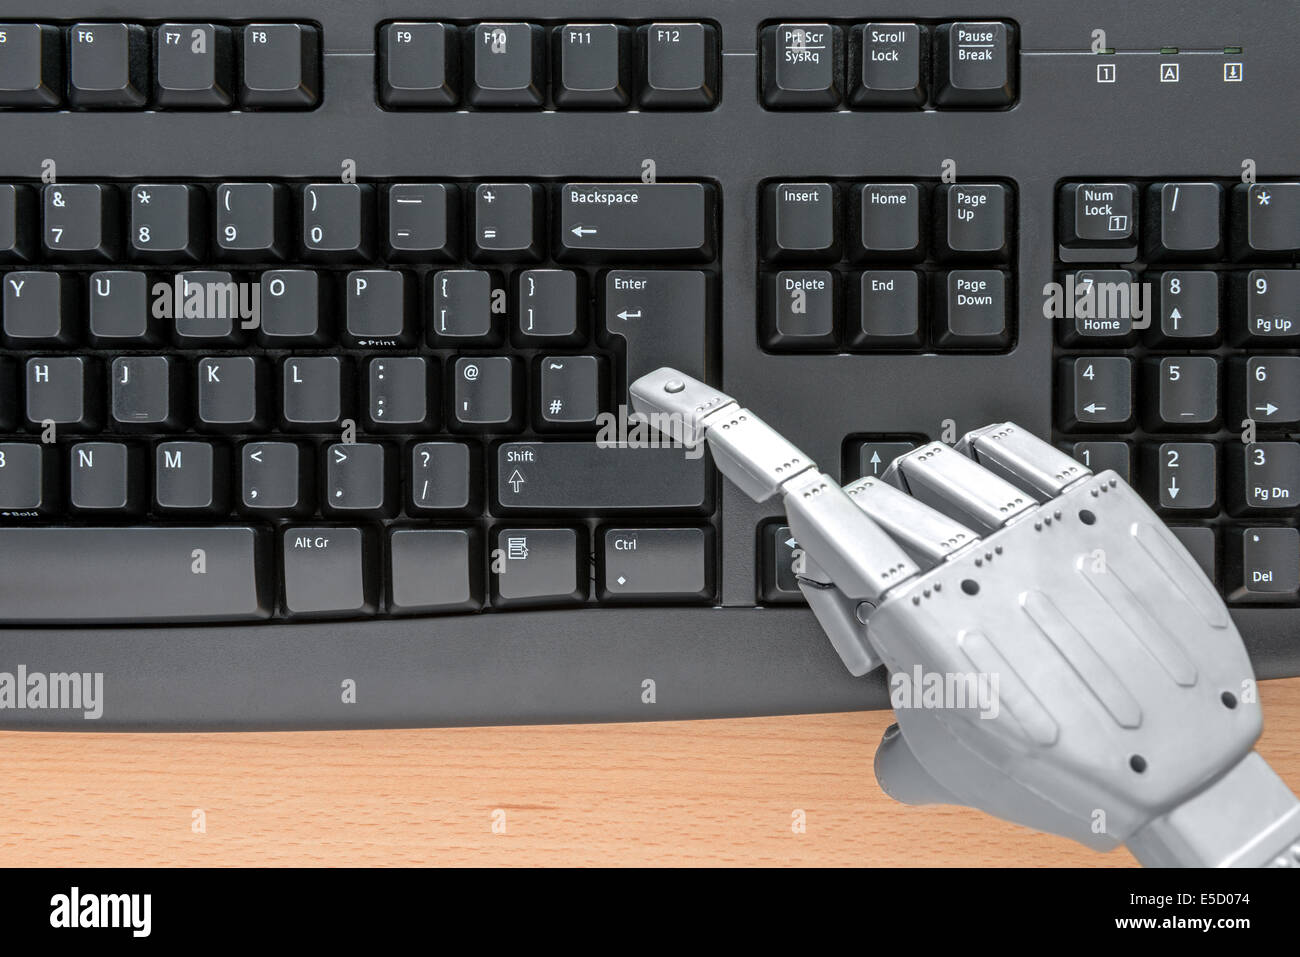 Robot hand typing on a computer keyboard. - Stock Image